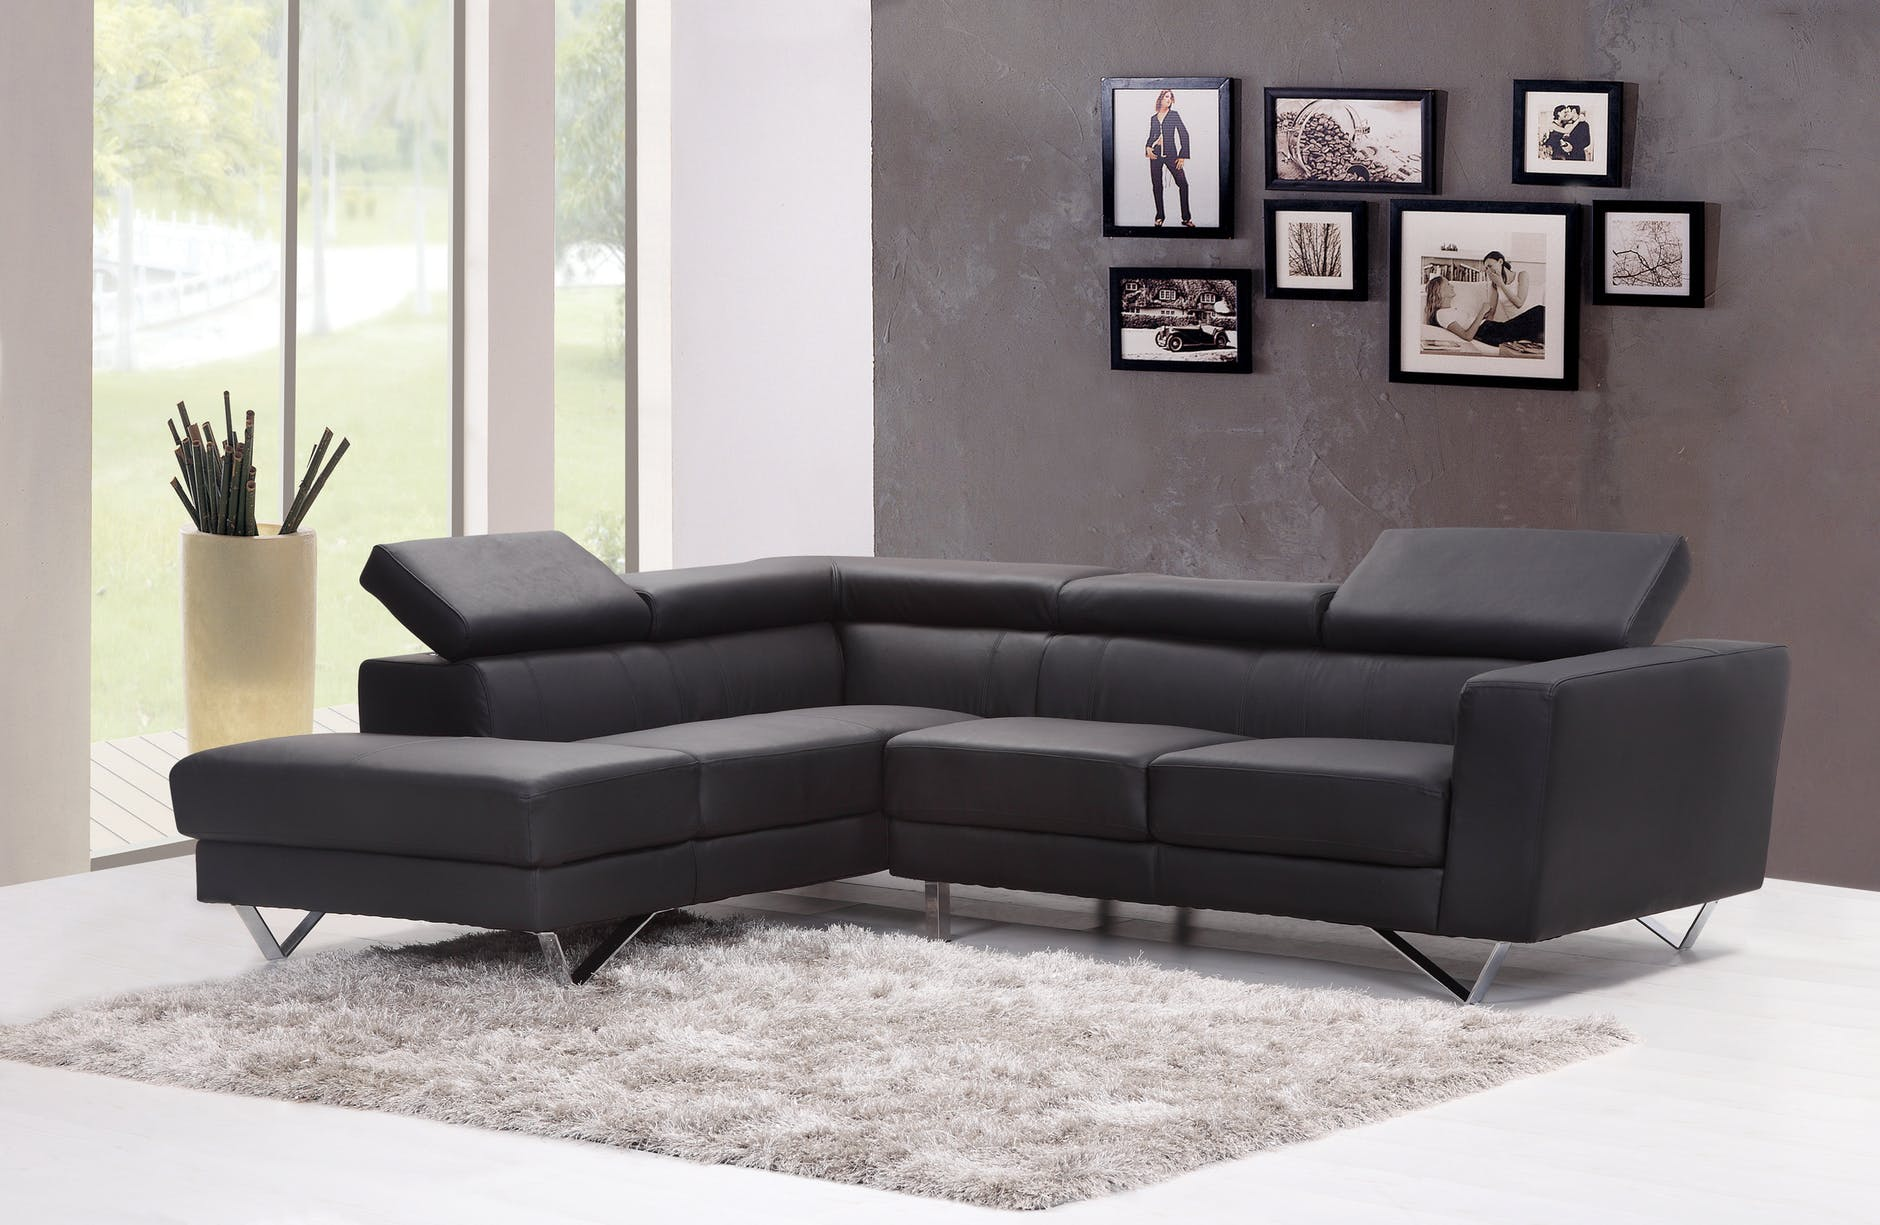 Ordinaire Black Bros. Has Nearly A Century Of Experience Supplying Manufacturers With  Quality, Dependable Machinery For The Residential Furniture Market.